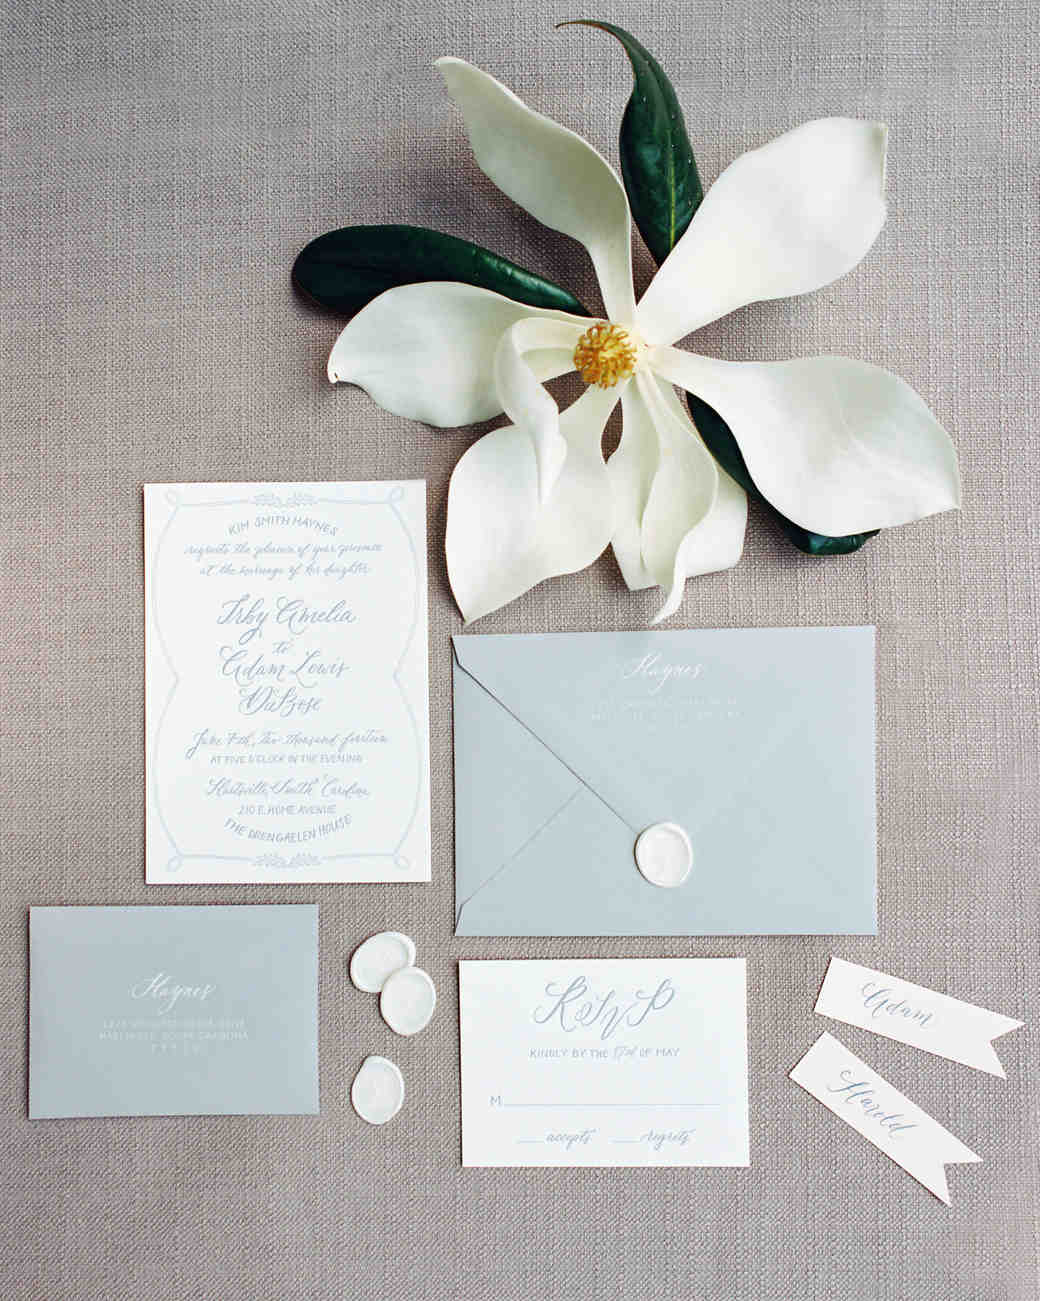 irby-adam-wedding-invite-27-s111660-1014.jpg